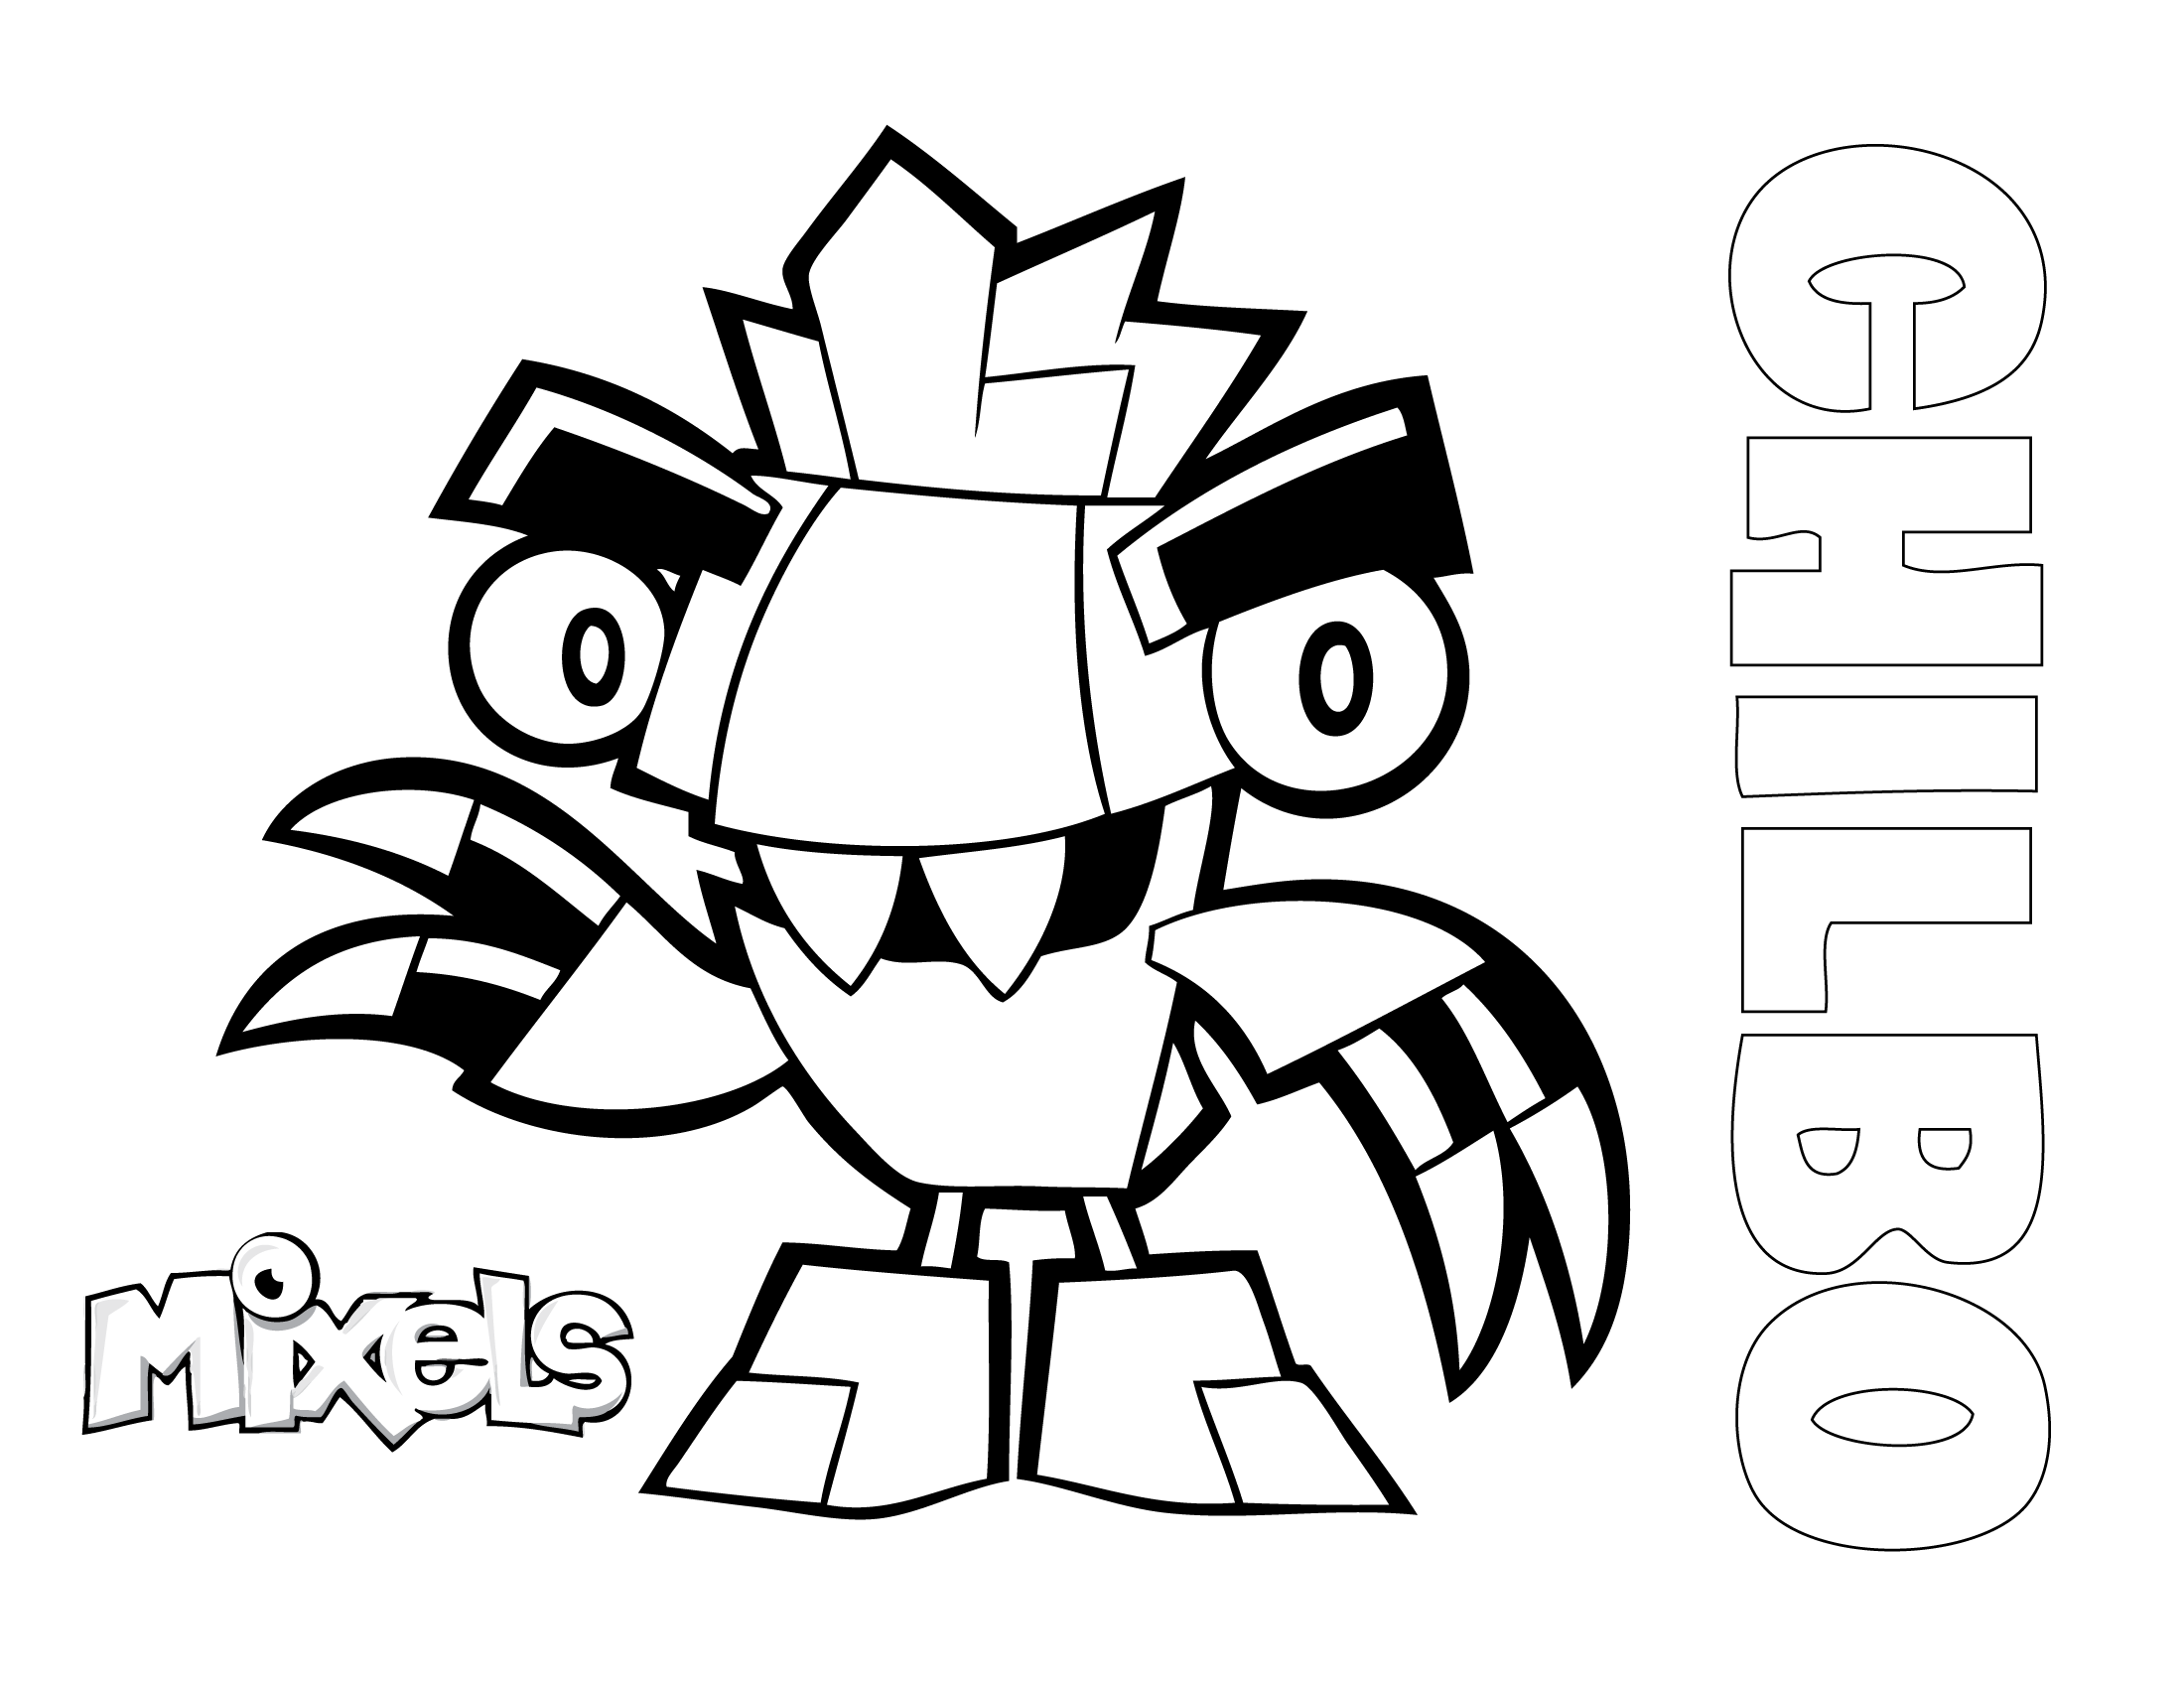 Lego pokemon coloring pages - Beautiful Christmas Coloring Pages Big Coloring Pages For Girls Shaped Printable Coloring Pages Pokemon Coloring Pages